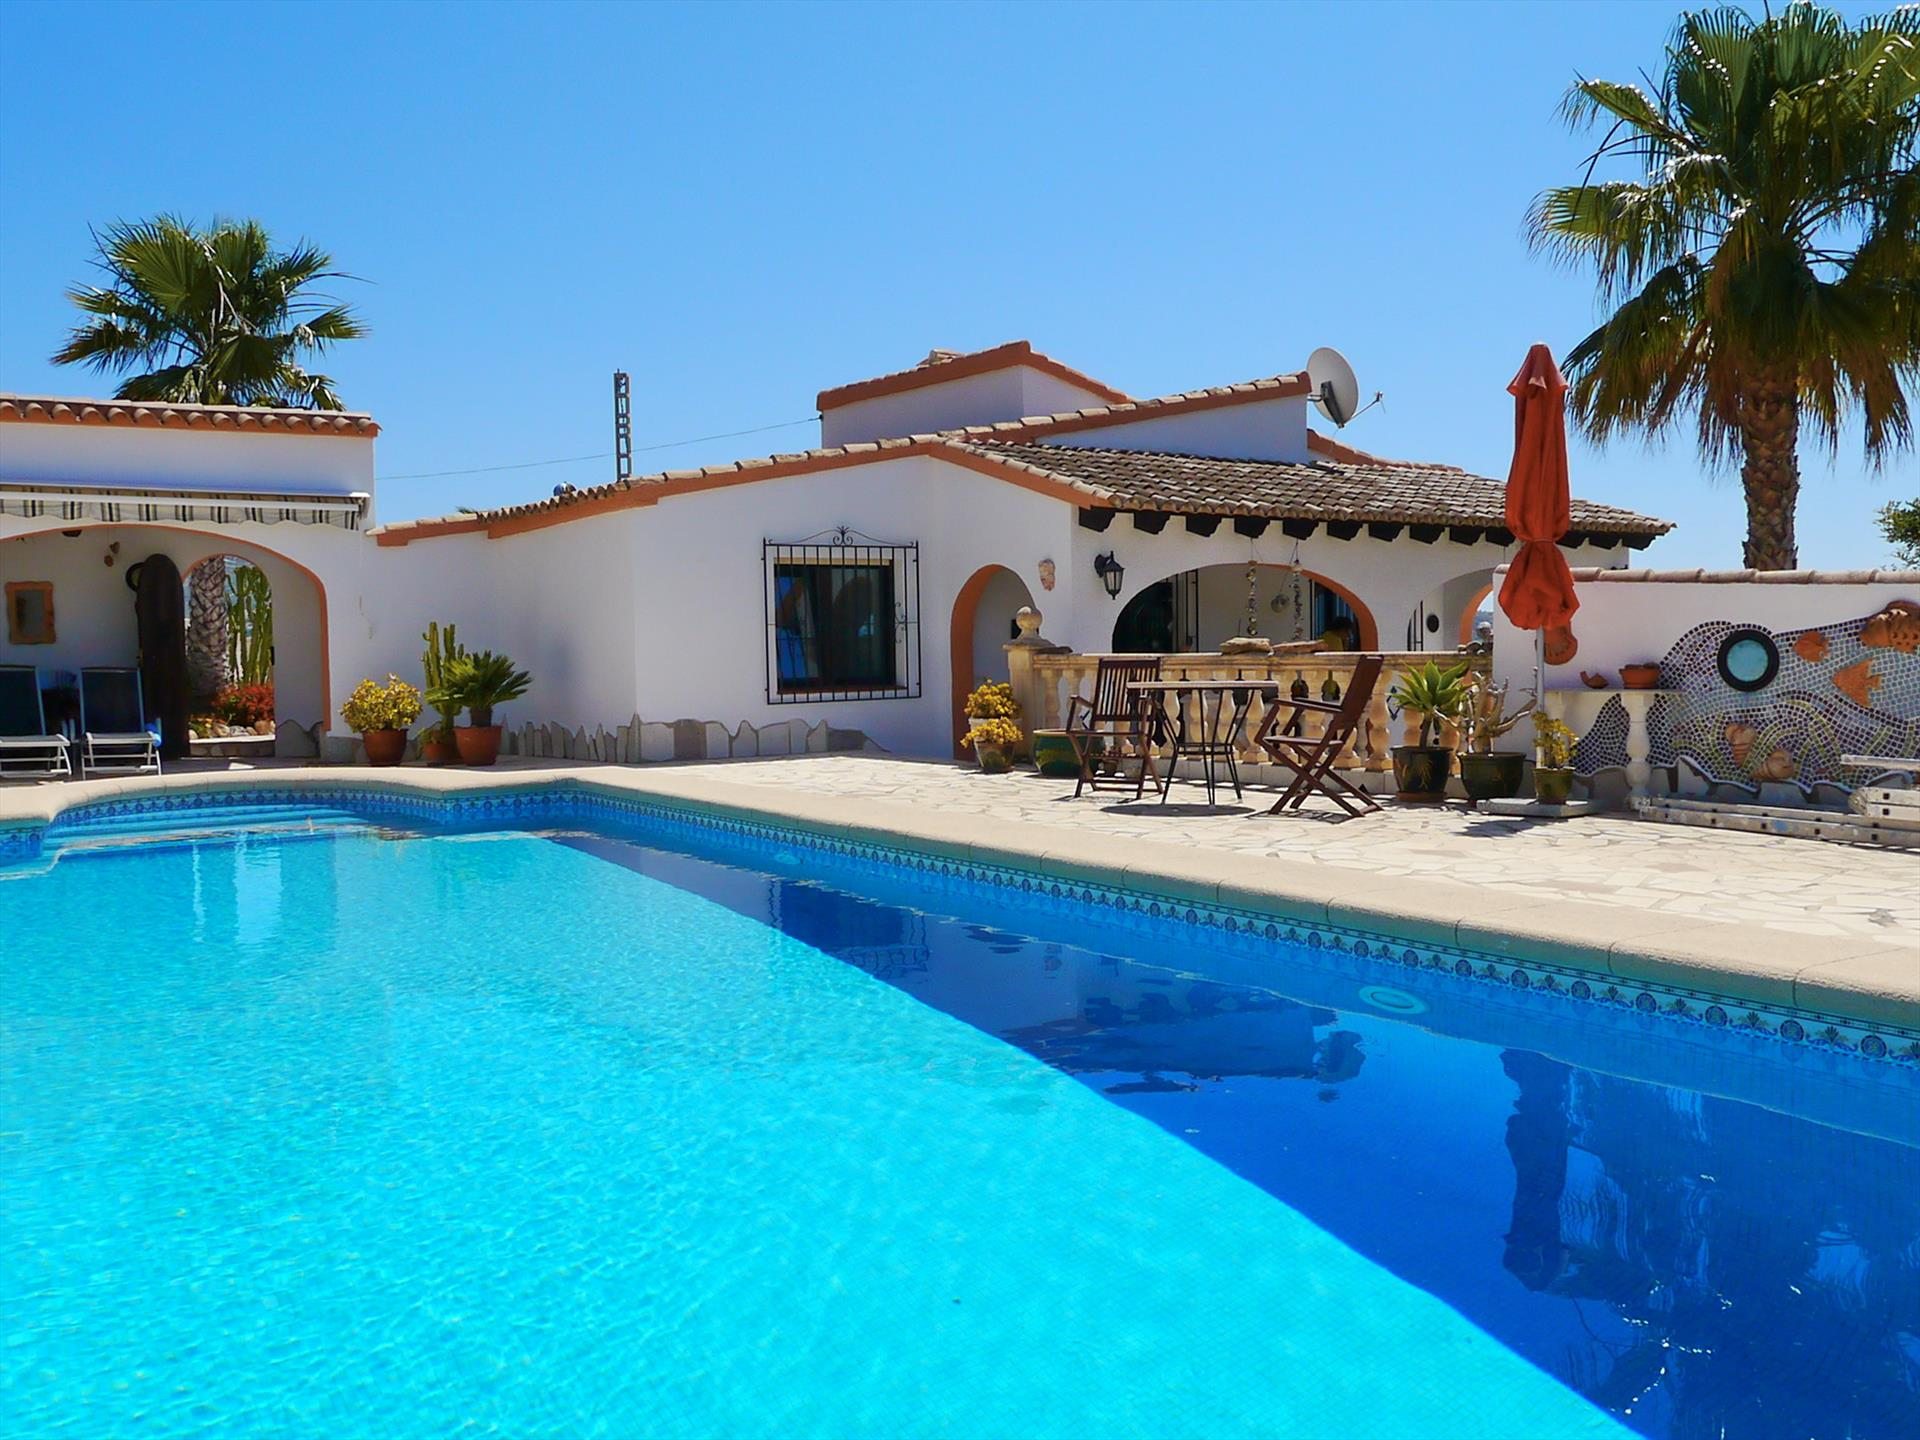 Flor, Wonderful and comfortable villa with private pool in Moraira, on the Costa Blanca, Spain for 3 persons. The villa is situated.....